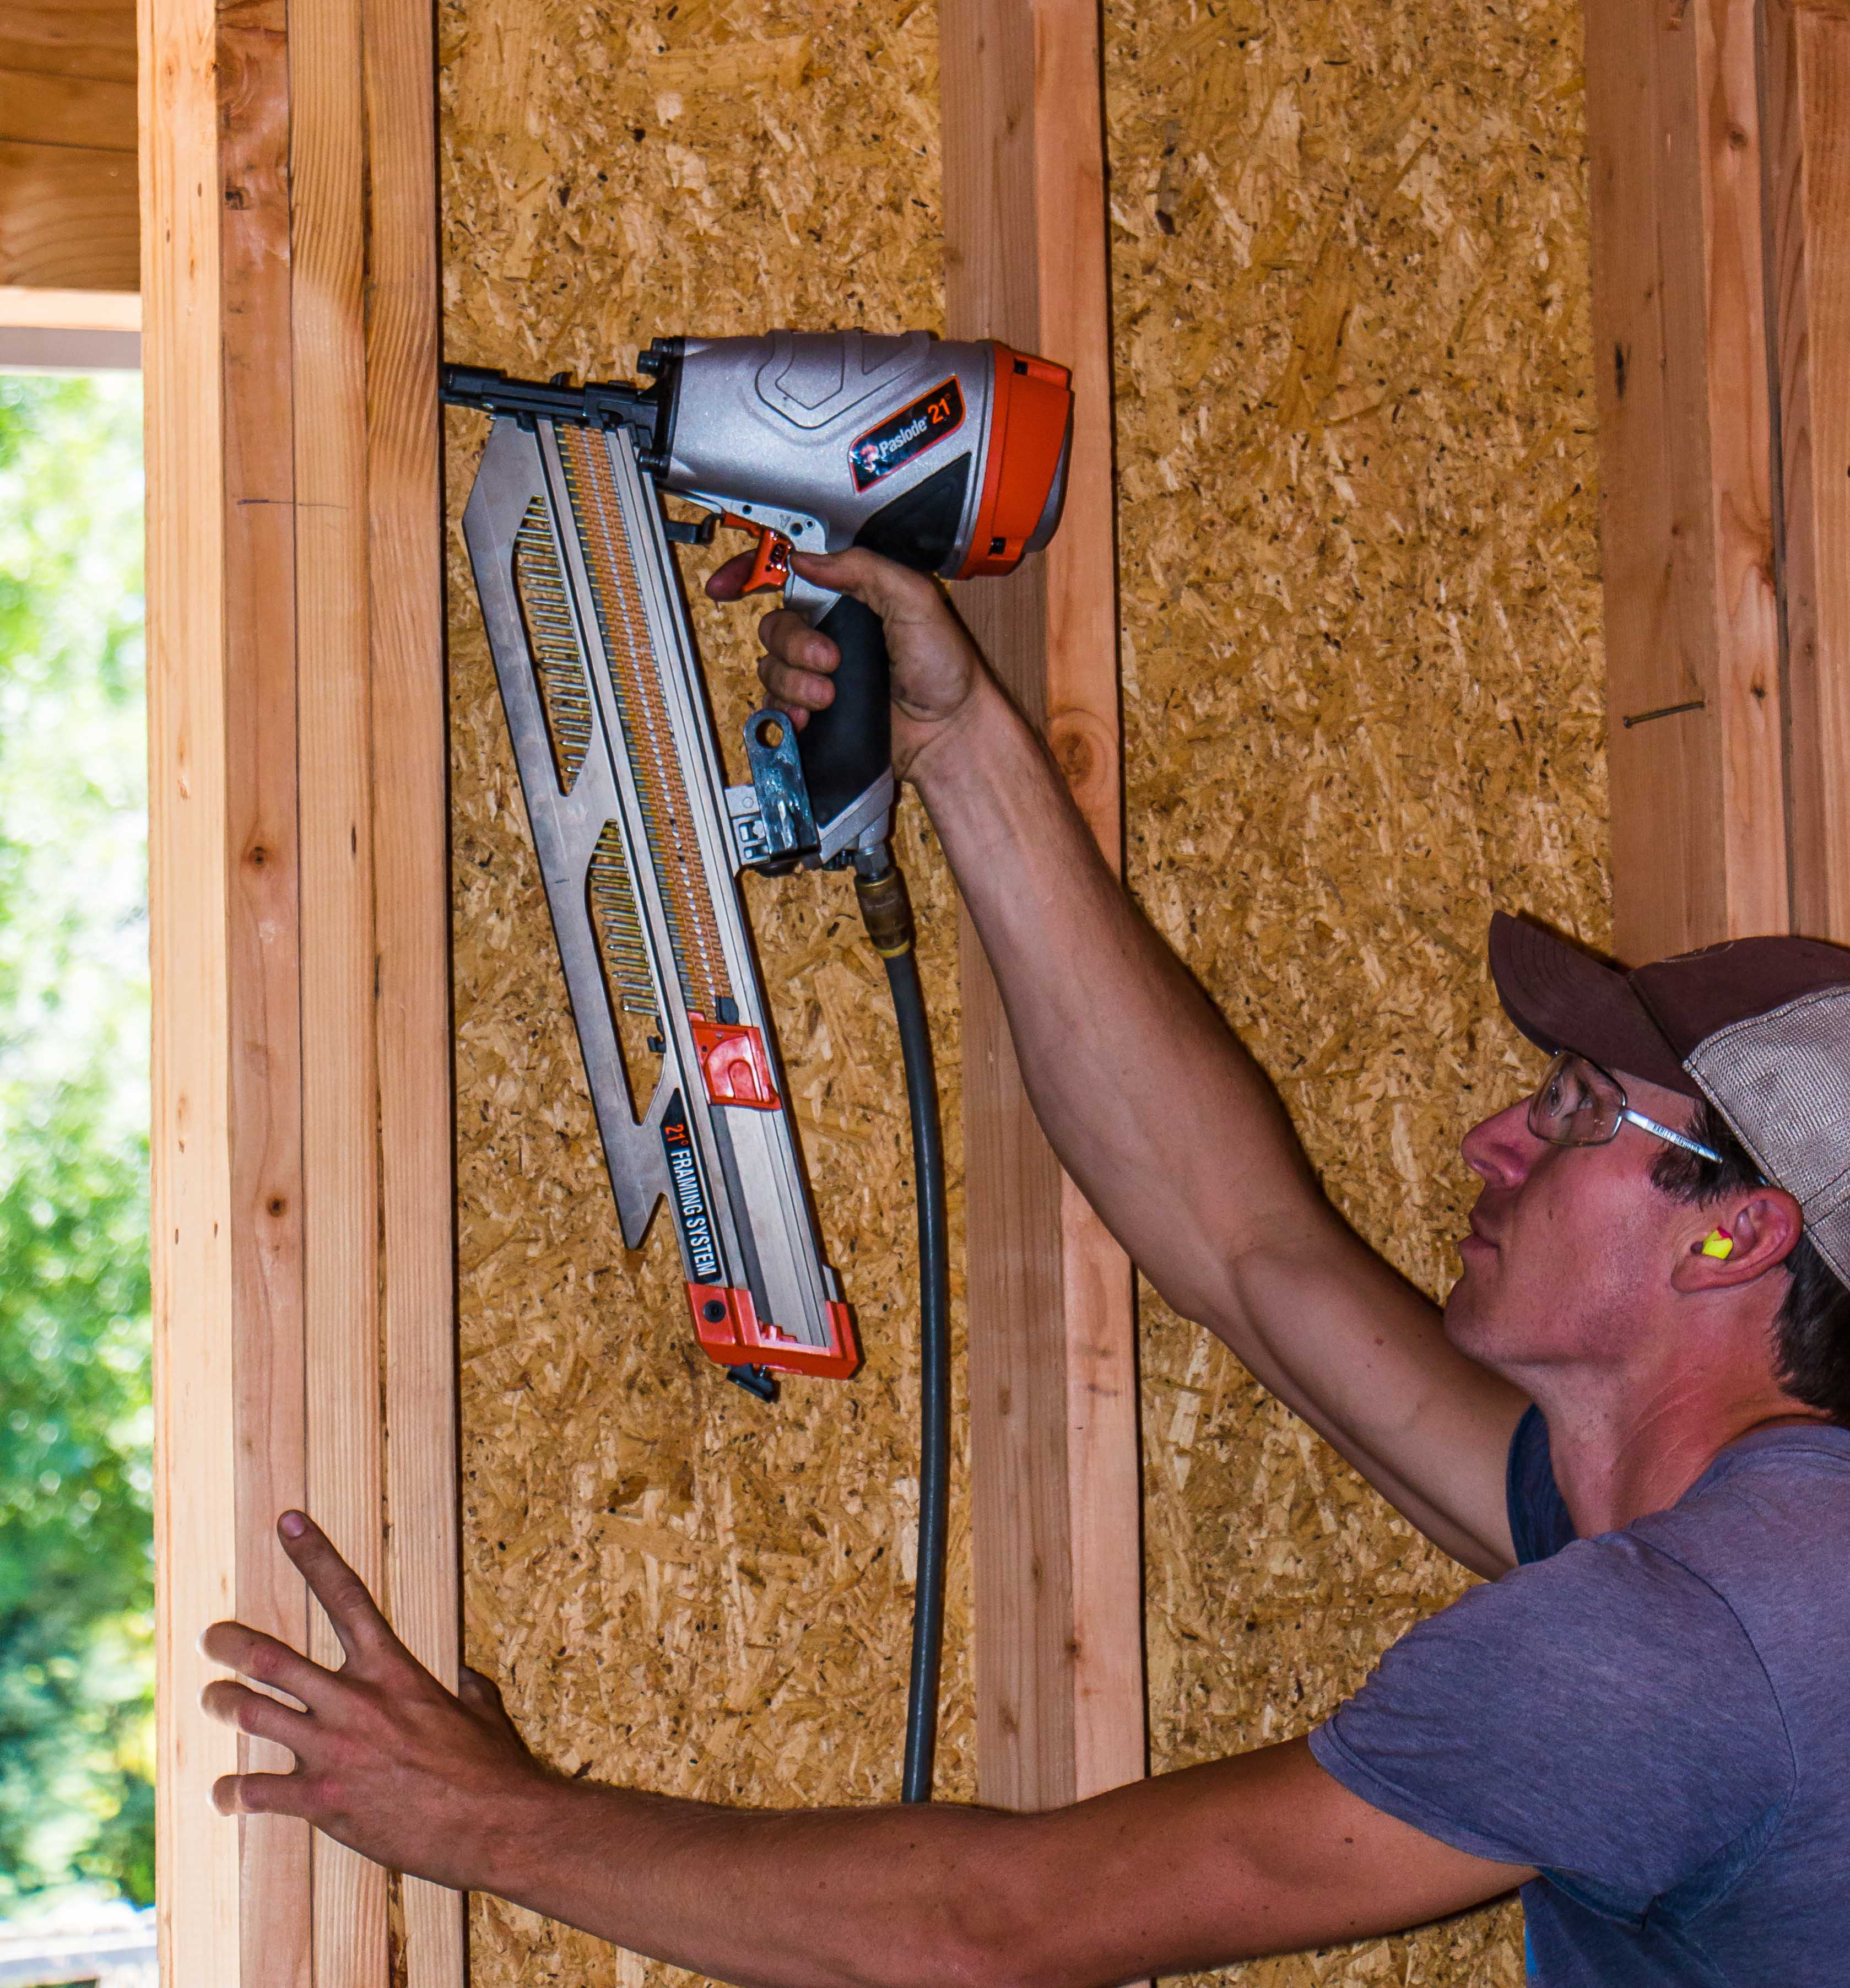 Paslode Framing Nailer Troubleshooting Choice greywater treatment ...